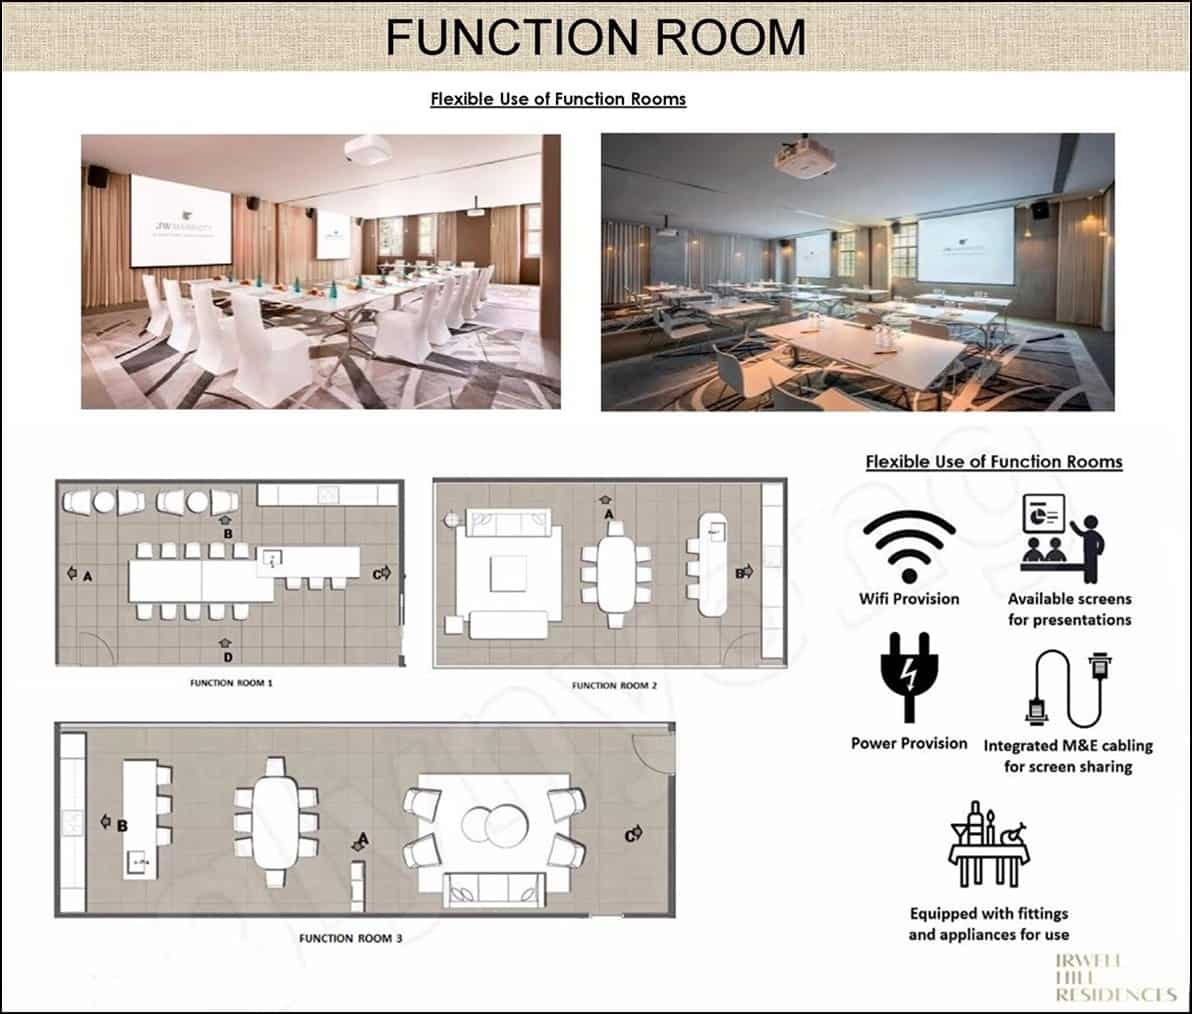 Irwell Hill Residences - Function room